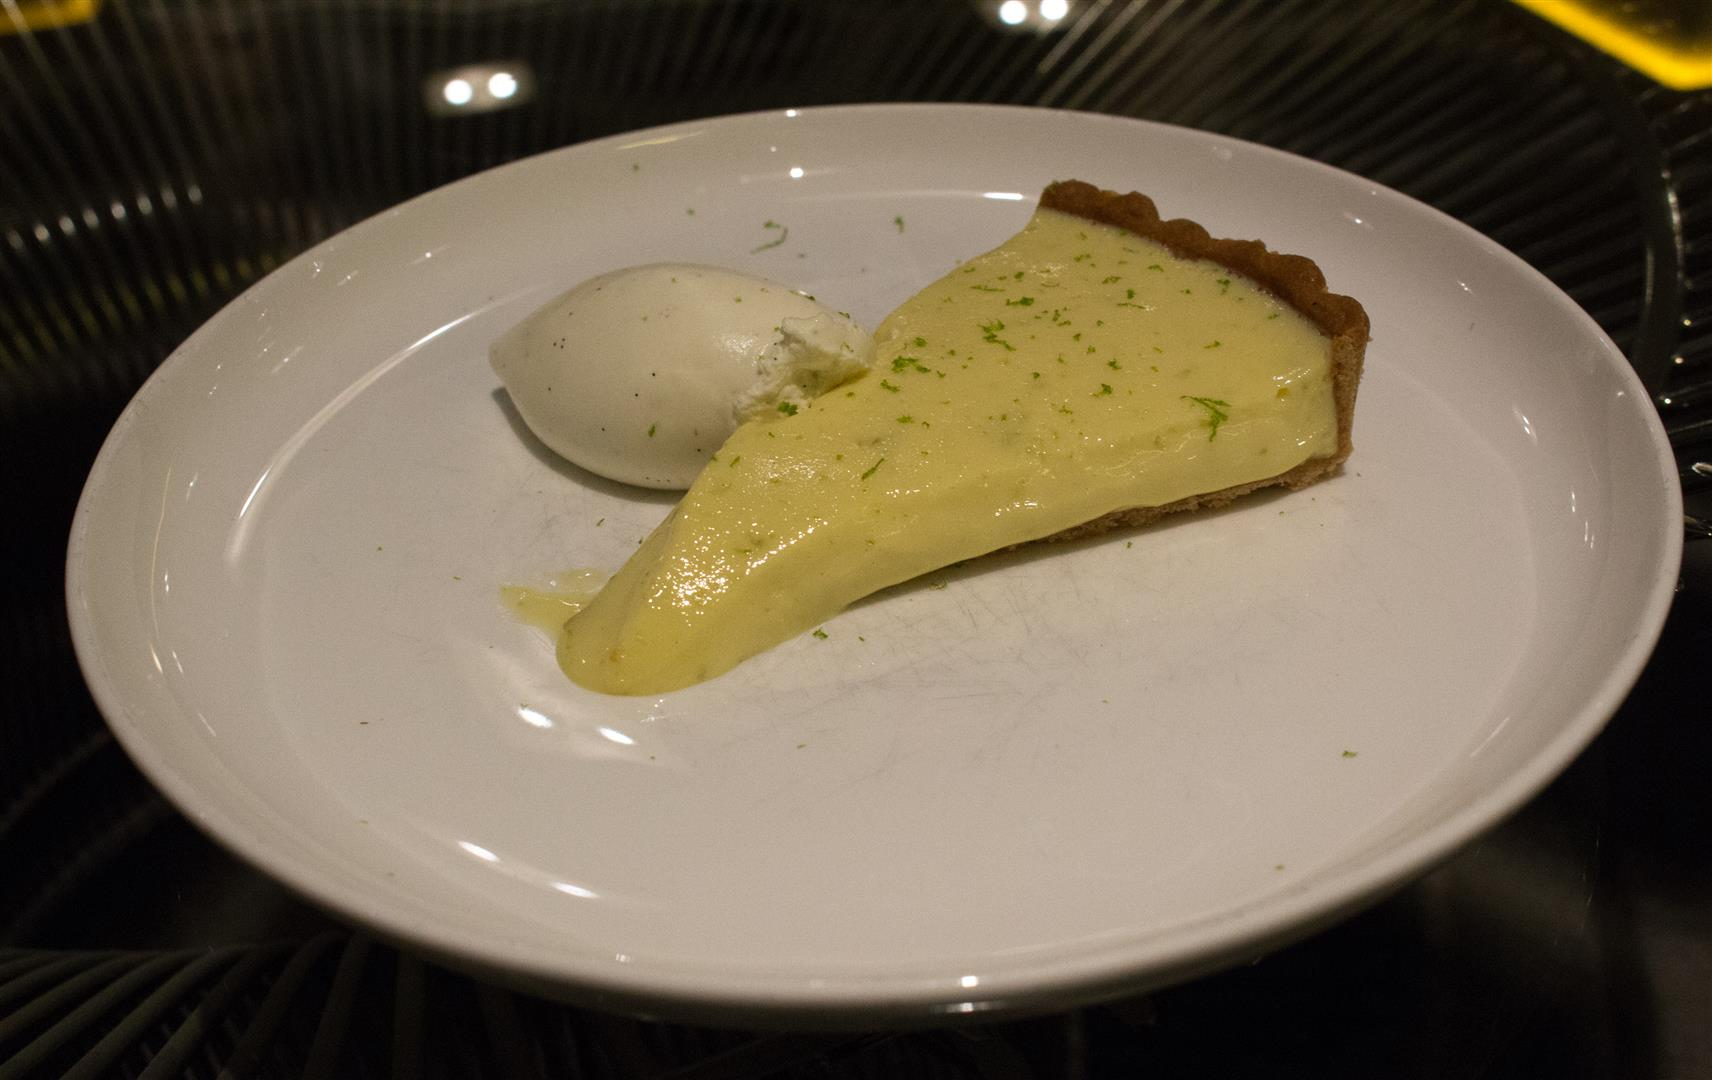 The Key Lime Tart - Sweet and definitely tart!